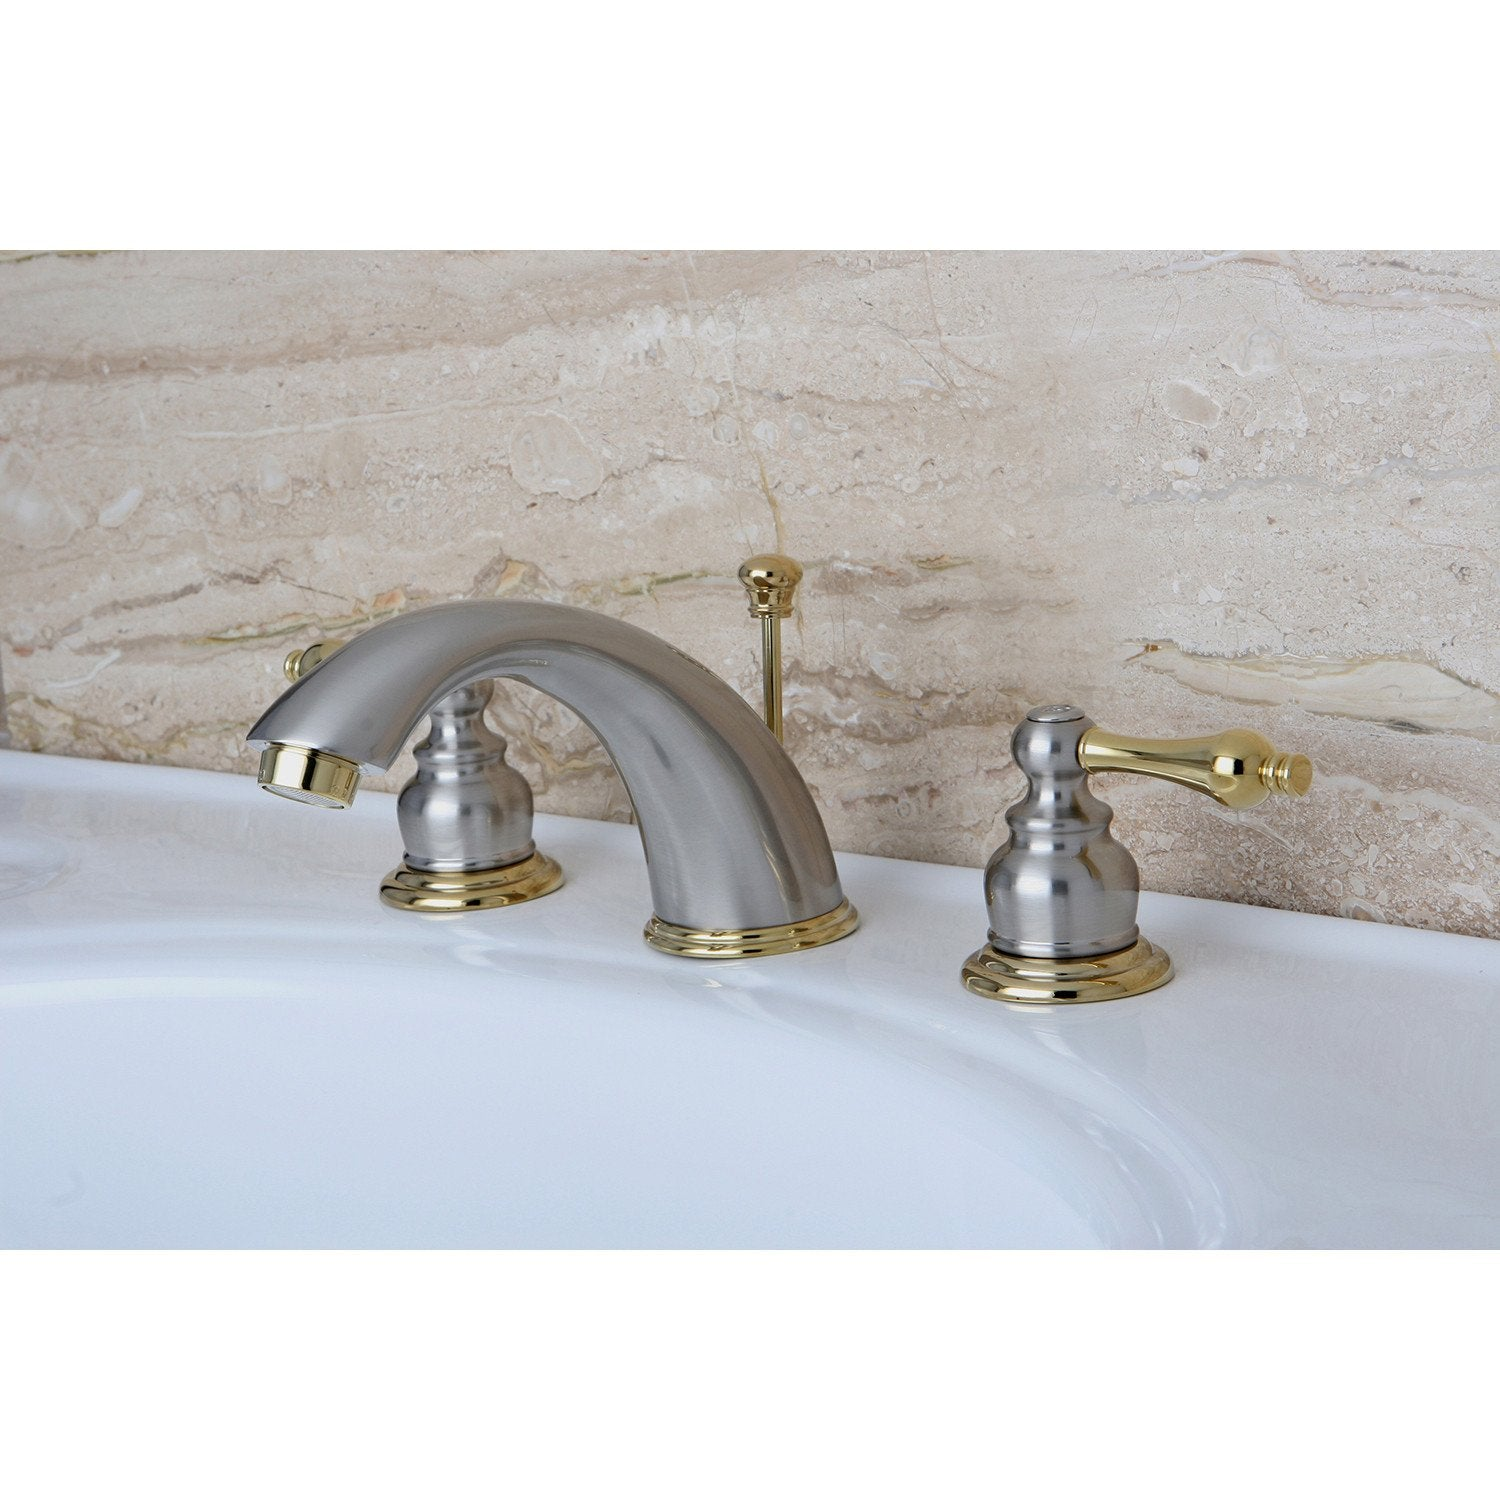 Kingston Satin Nickel / Polished Brass 2 Hdl Widespread Bathroom Faucet KB979AL